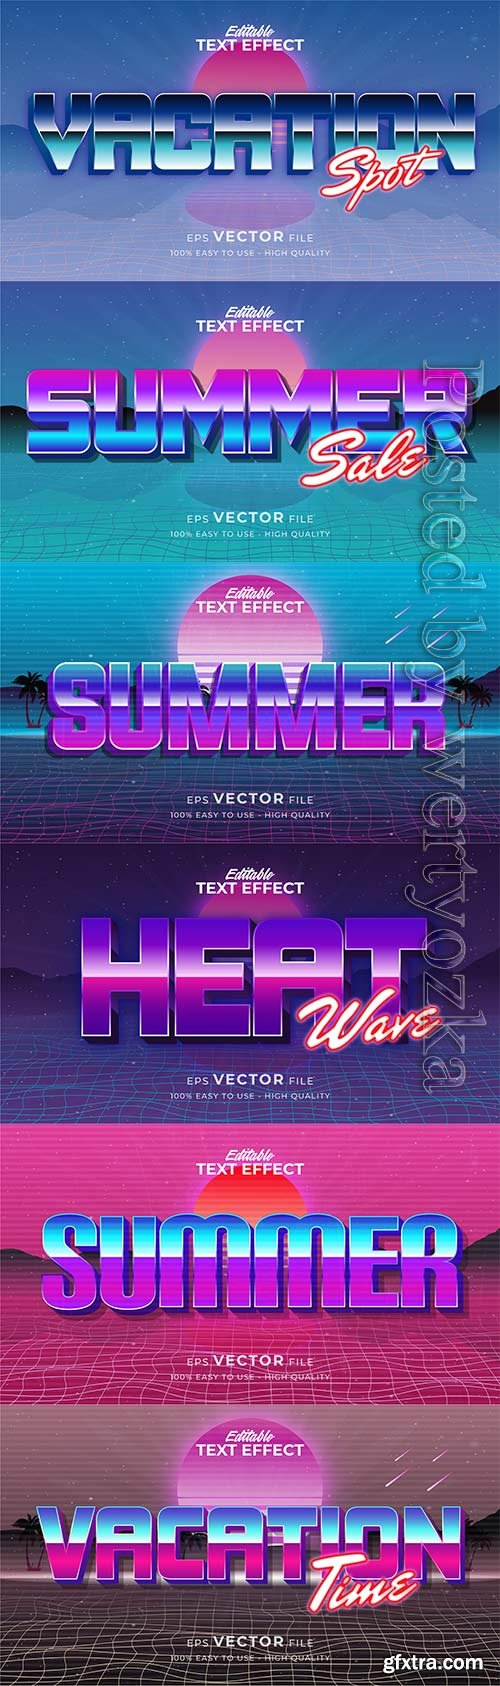 Text style effect, retro summer text in grunge style vol 7